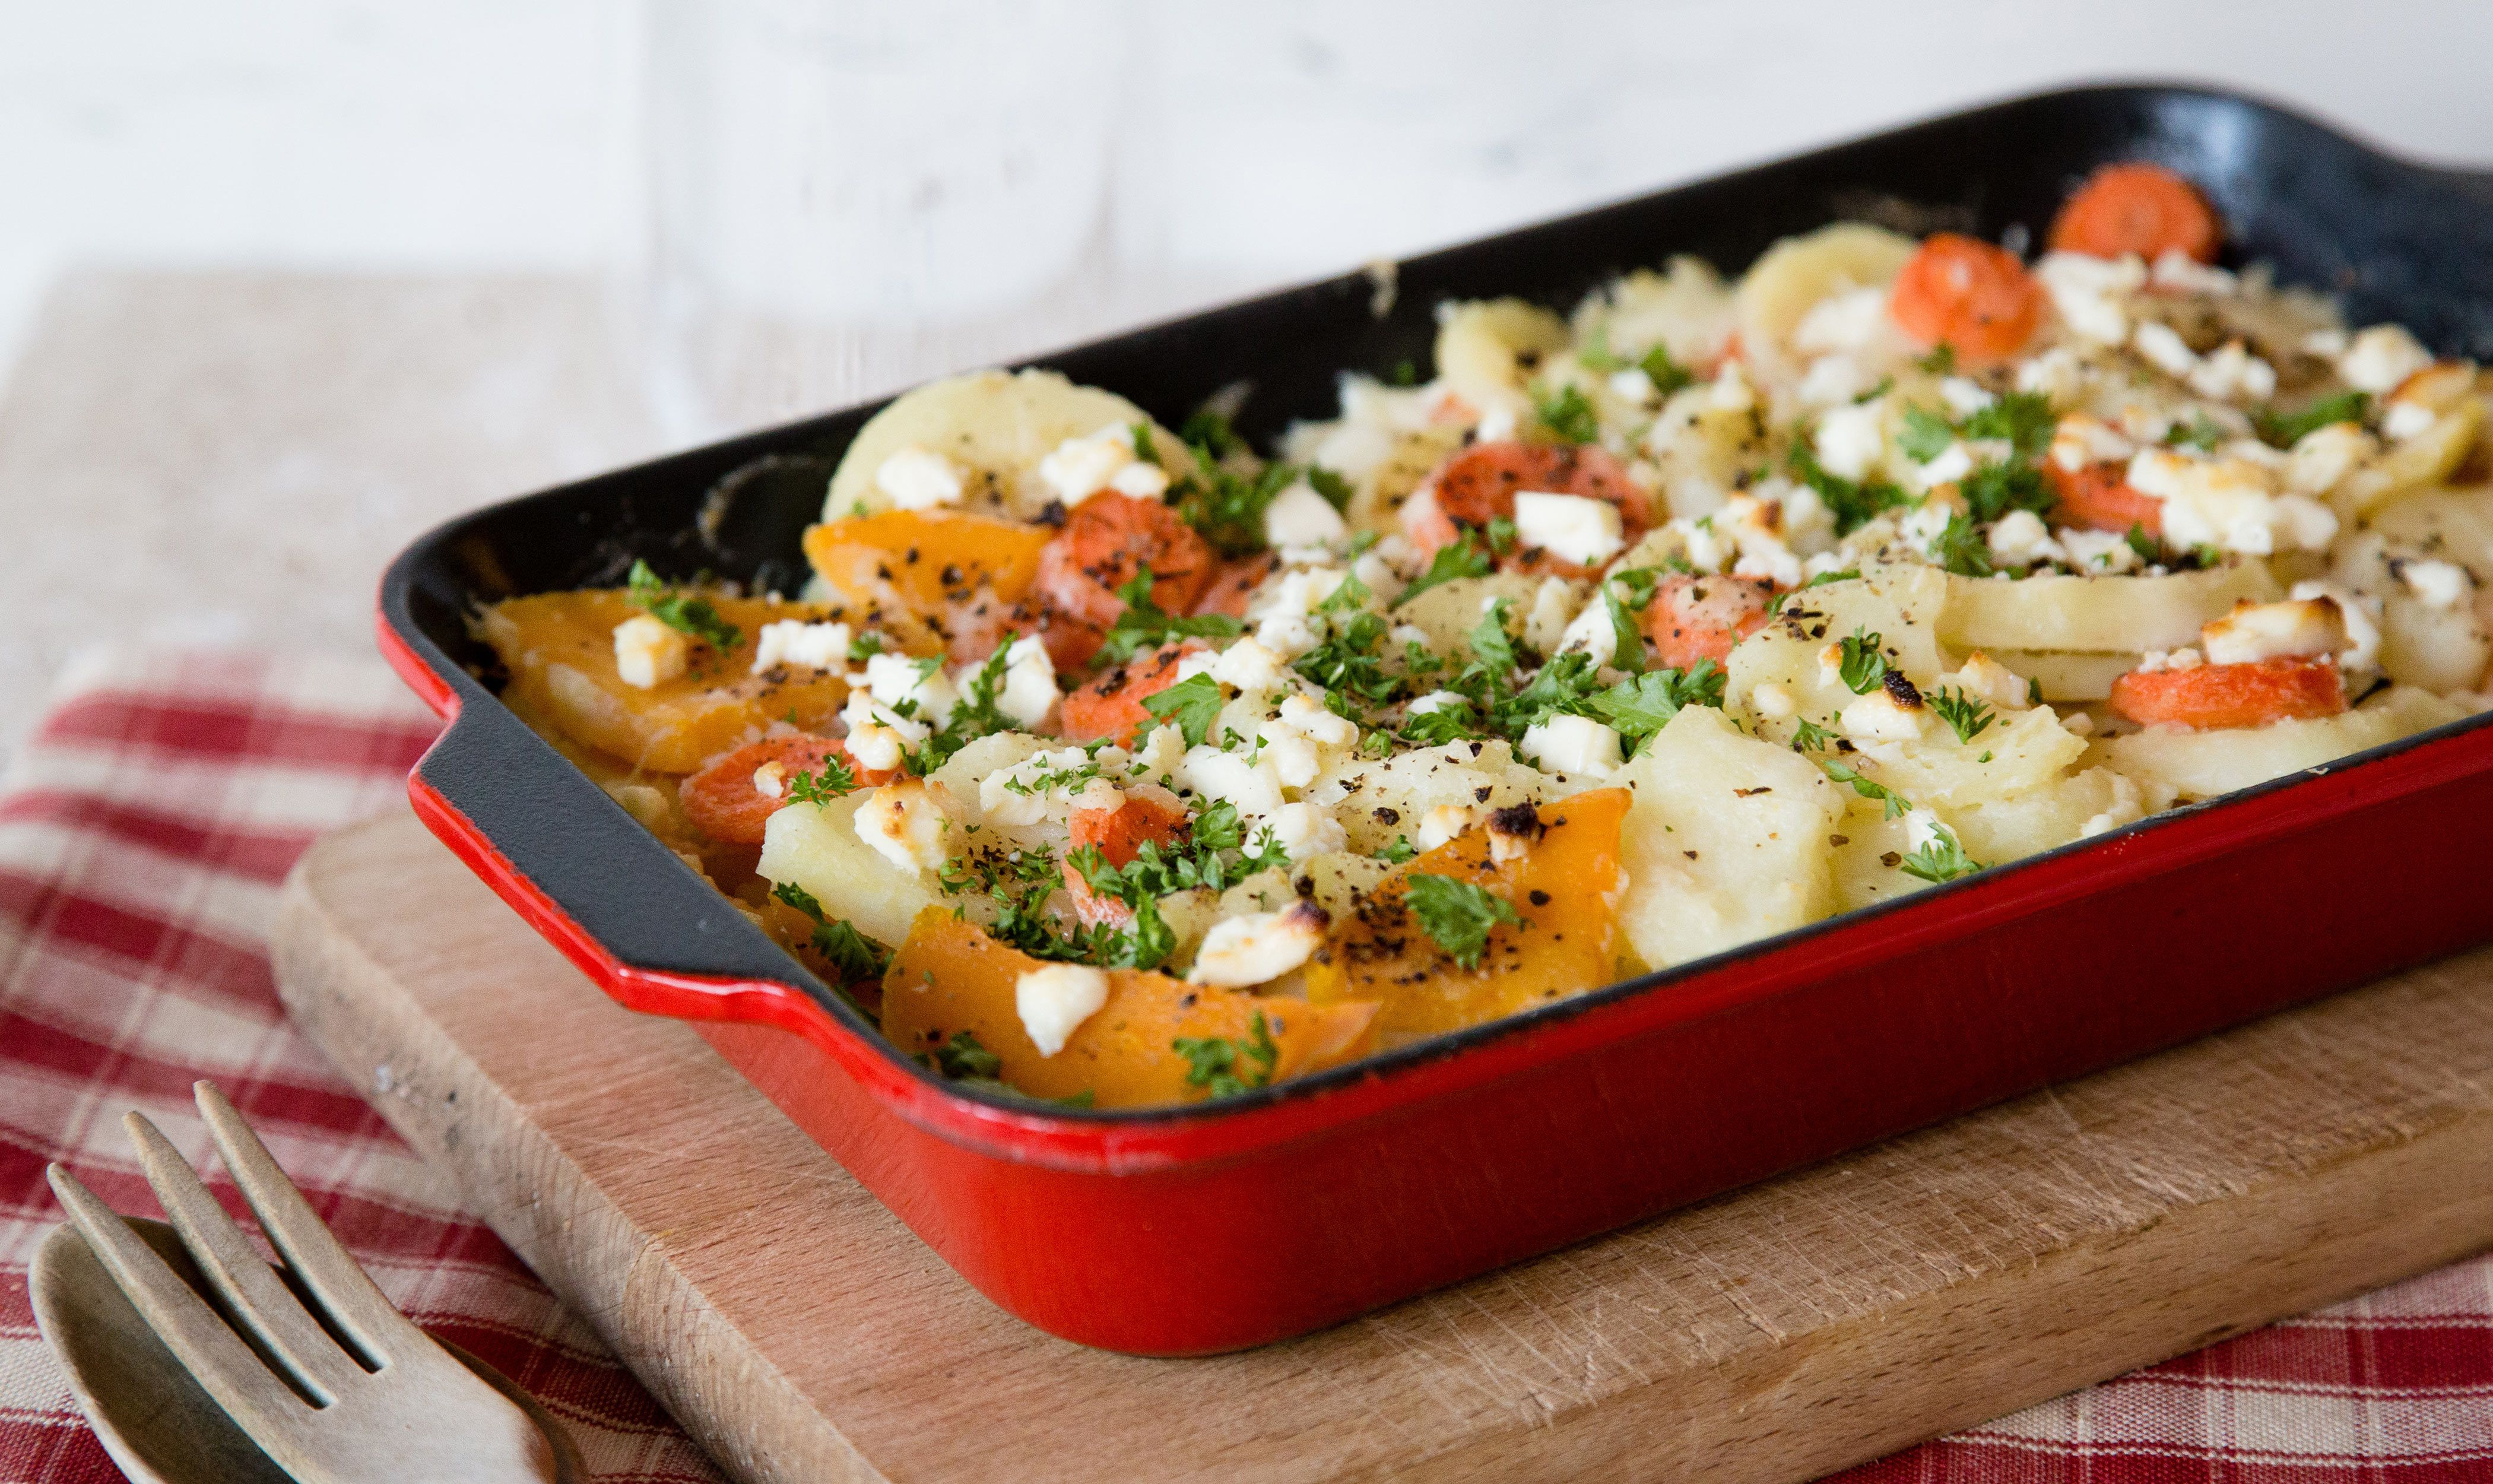 Mixed vegetable gratin with white cheese sauce